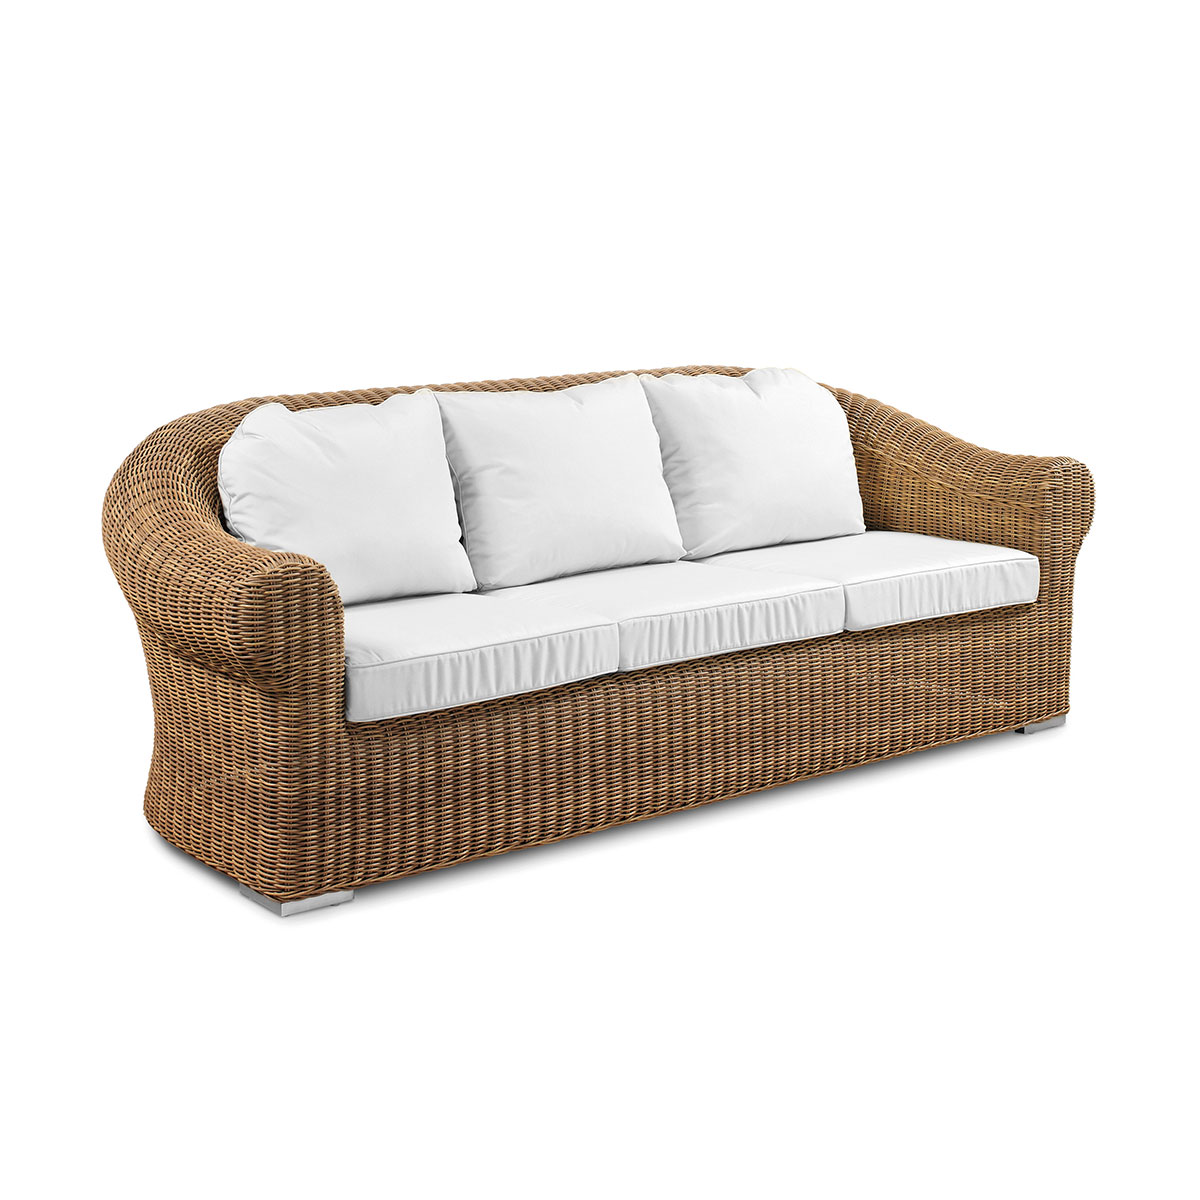 3 seated sofa Cloe Braid